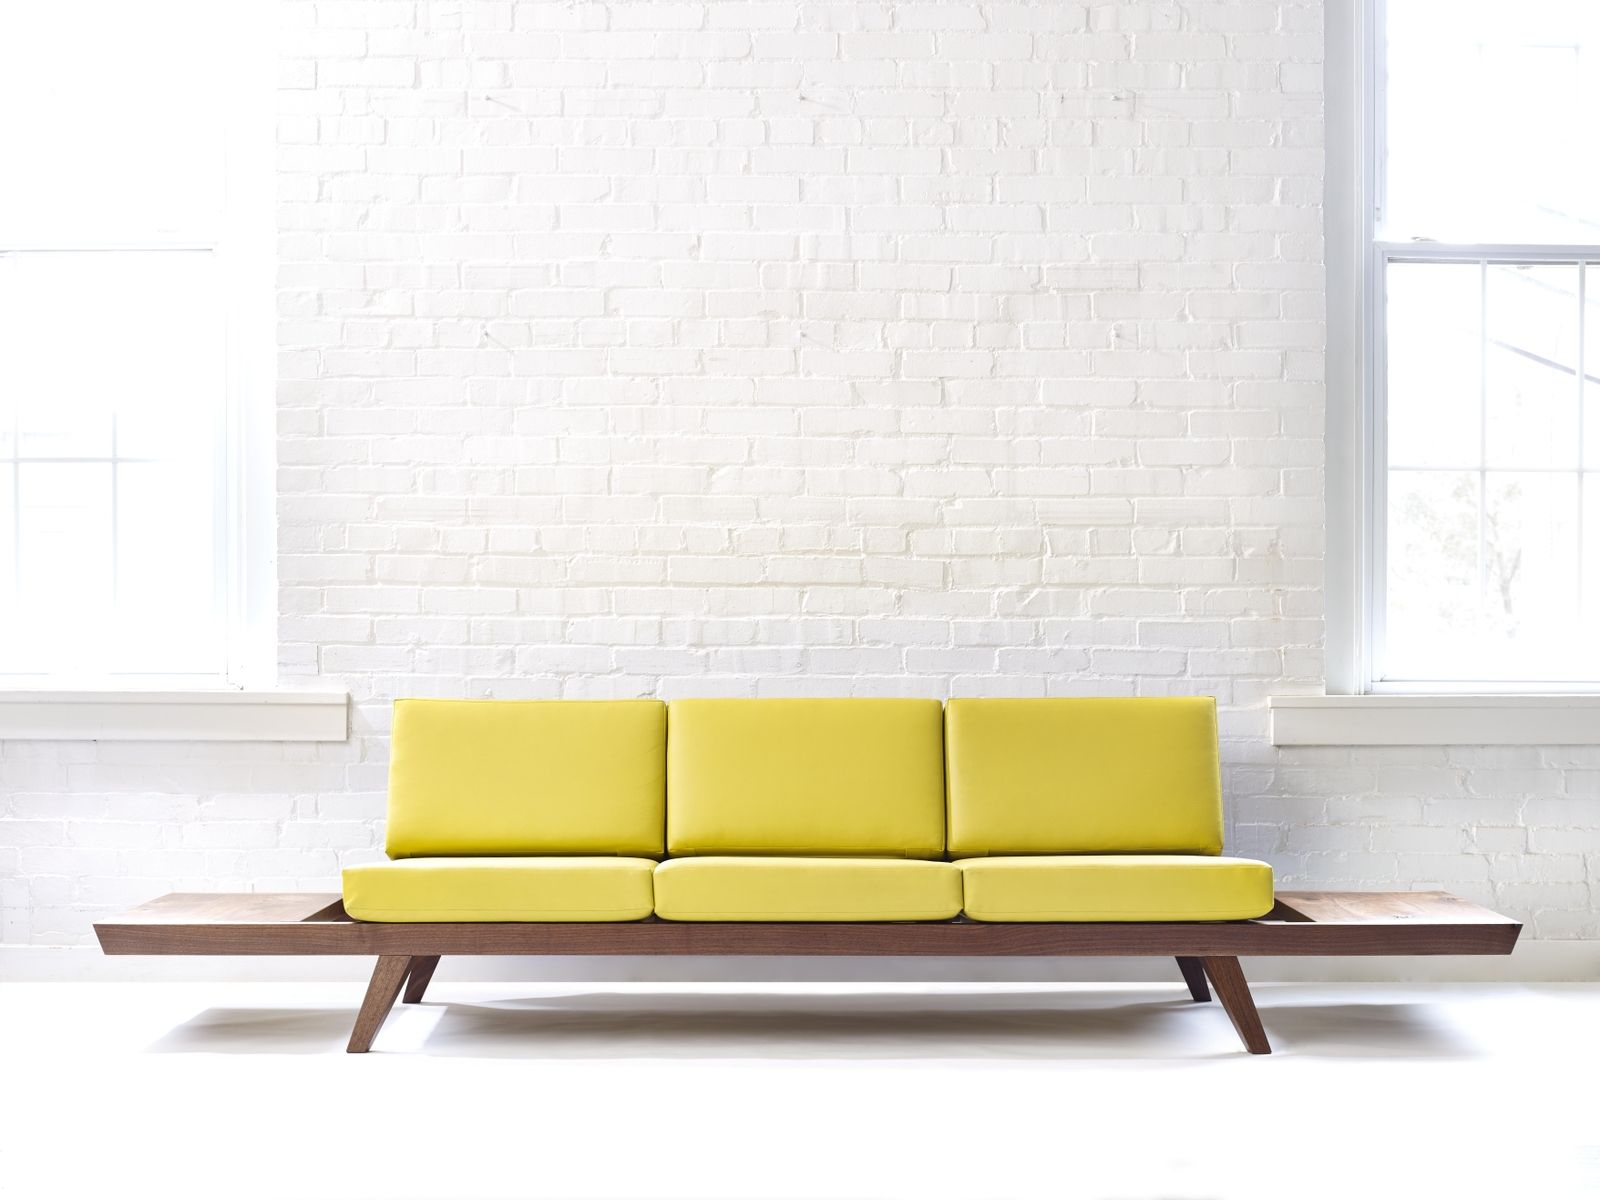 handmade sofas small kidney shaped sofa buy a head in the sky modern couch with